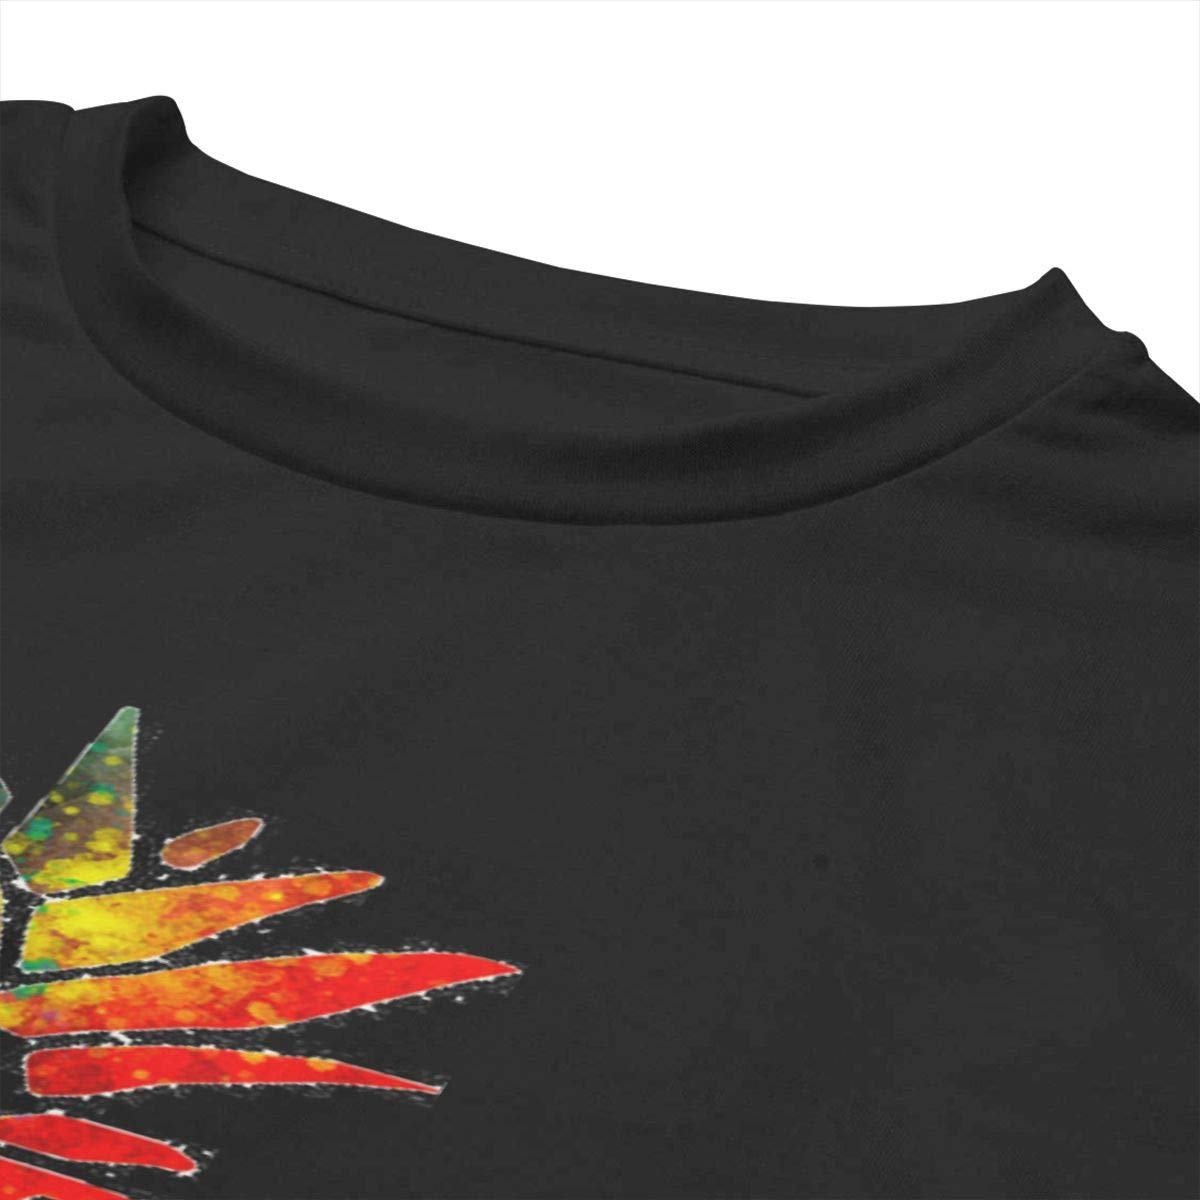 Colorful Pineapple T-Shirt Womens Crop Tops Short Sleeve Tshirts Activewear Exercise Crop Tops